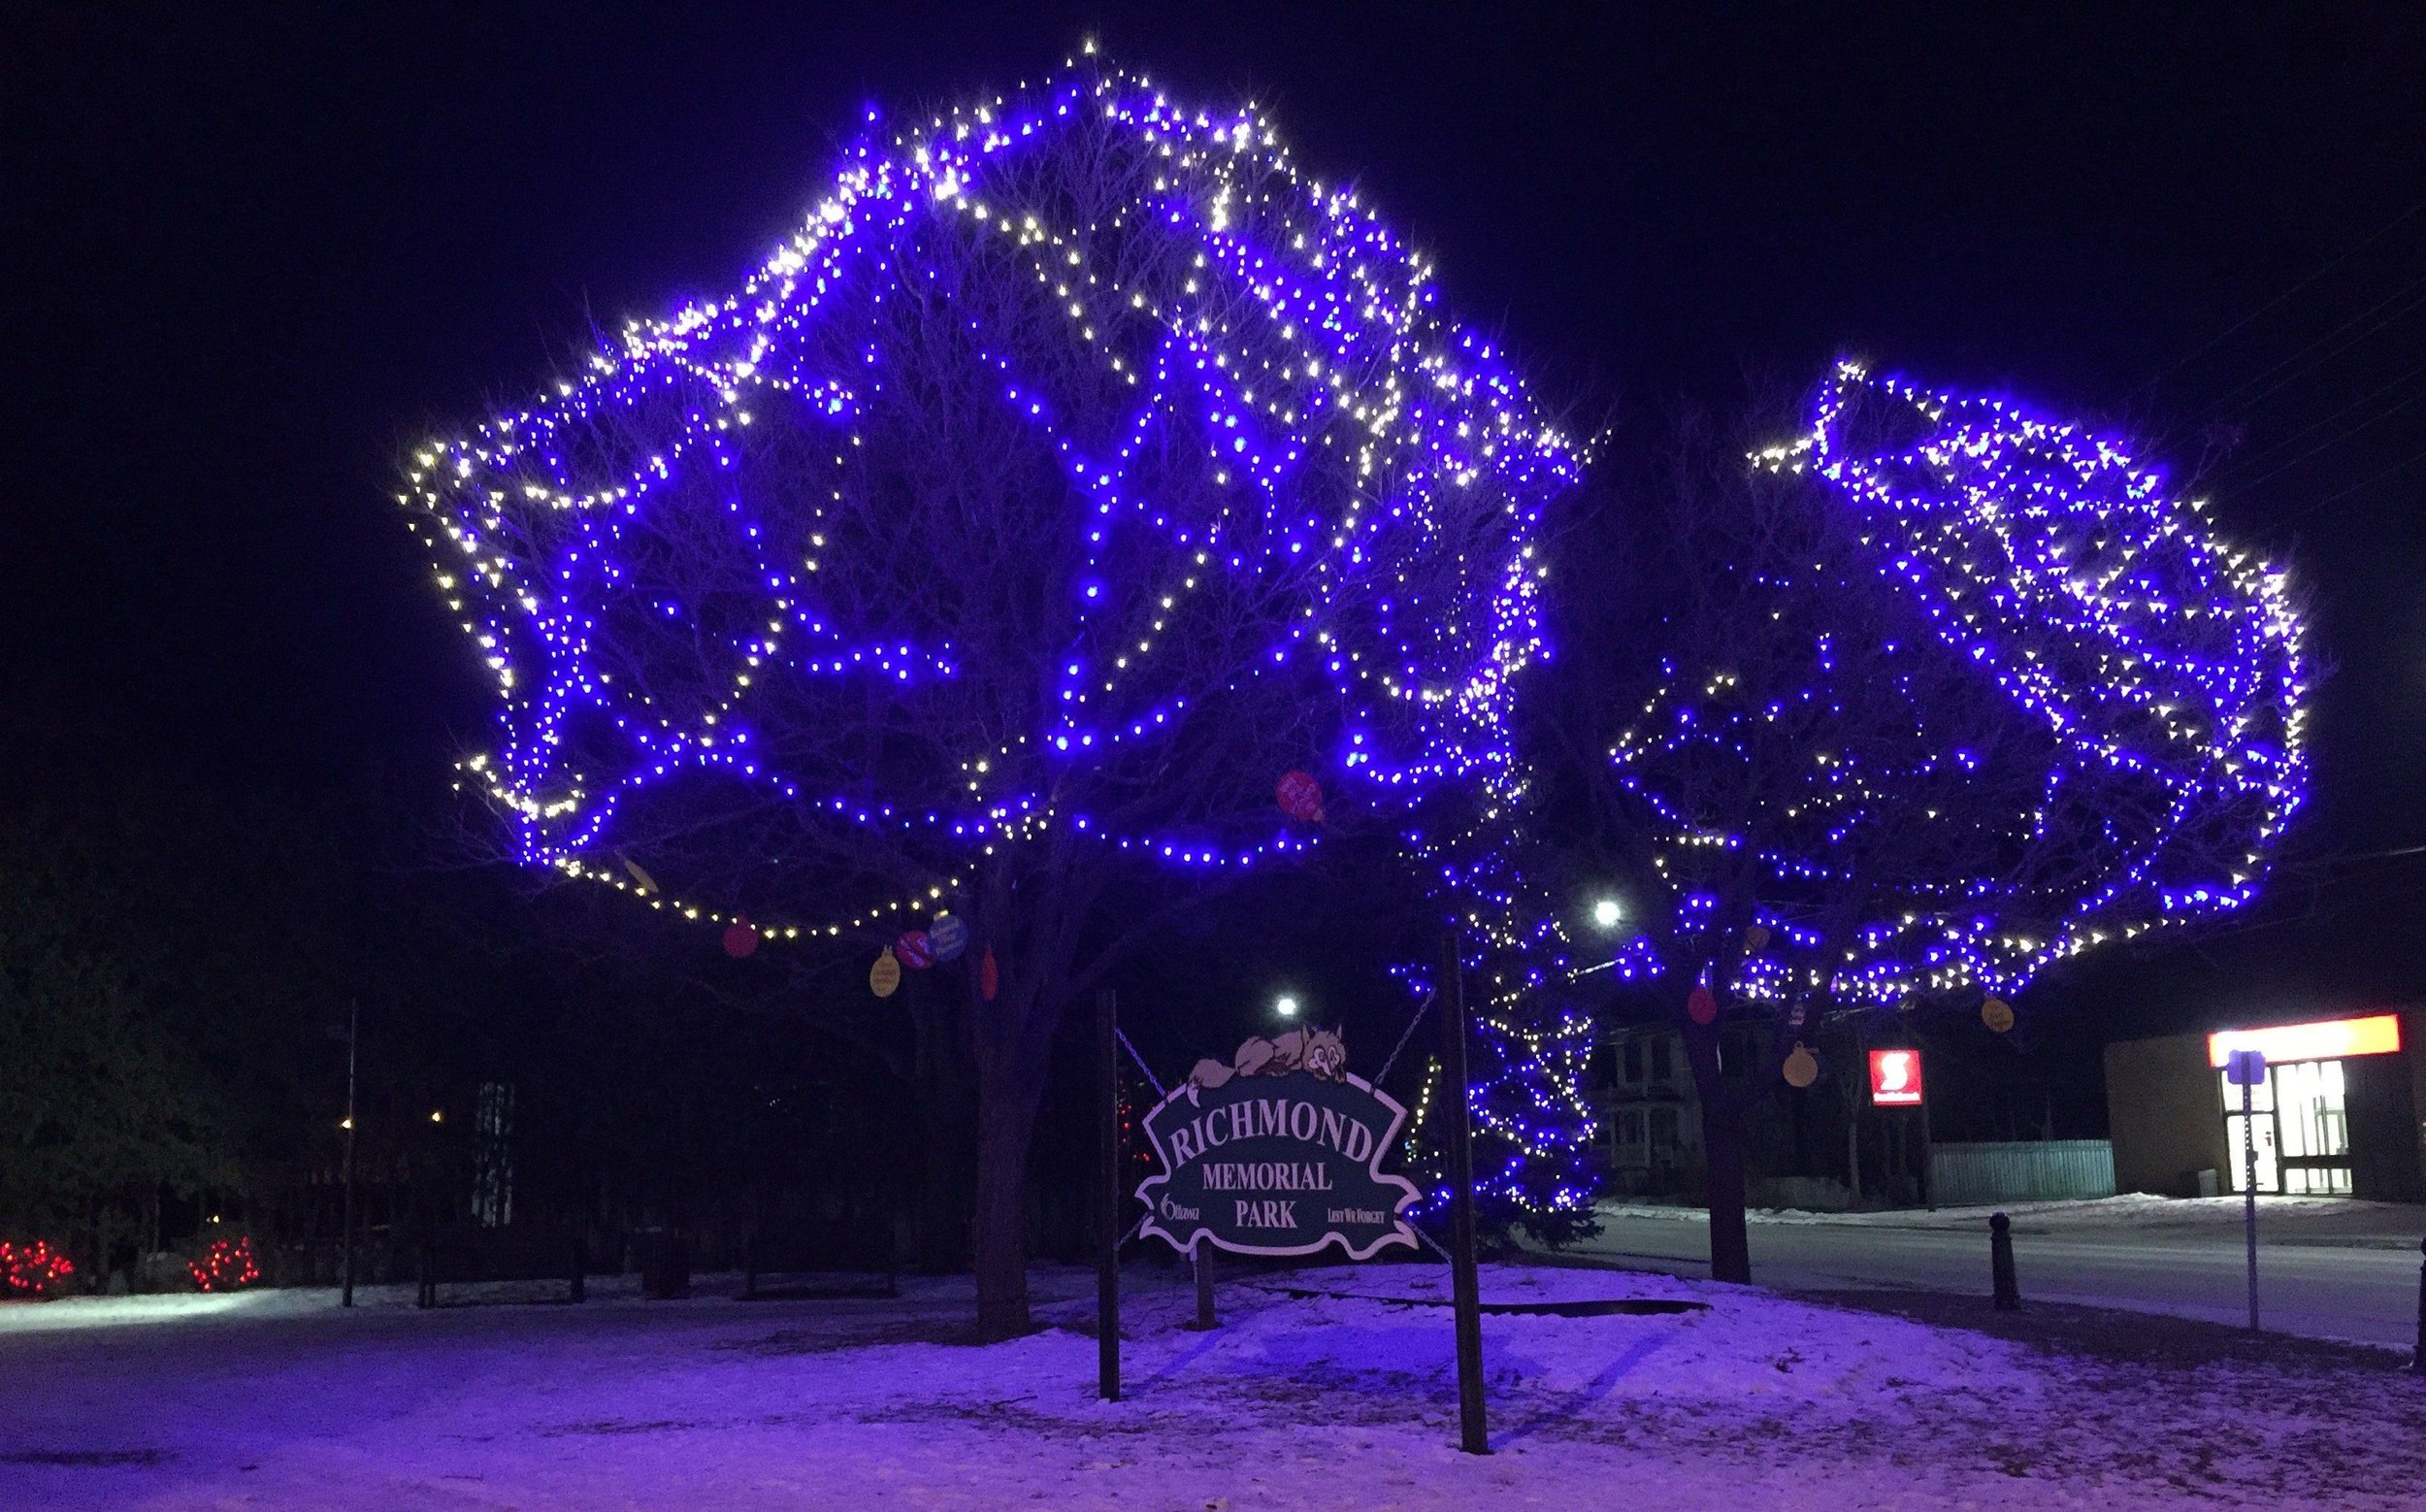 We hope you have had the chance to take in the beautiful lights in Richmond's Memorial Park!